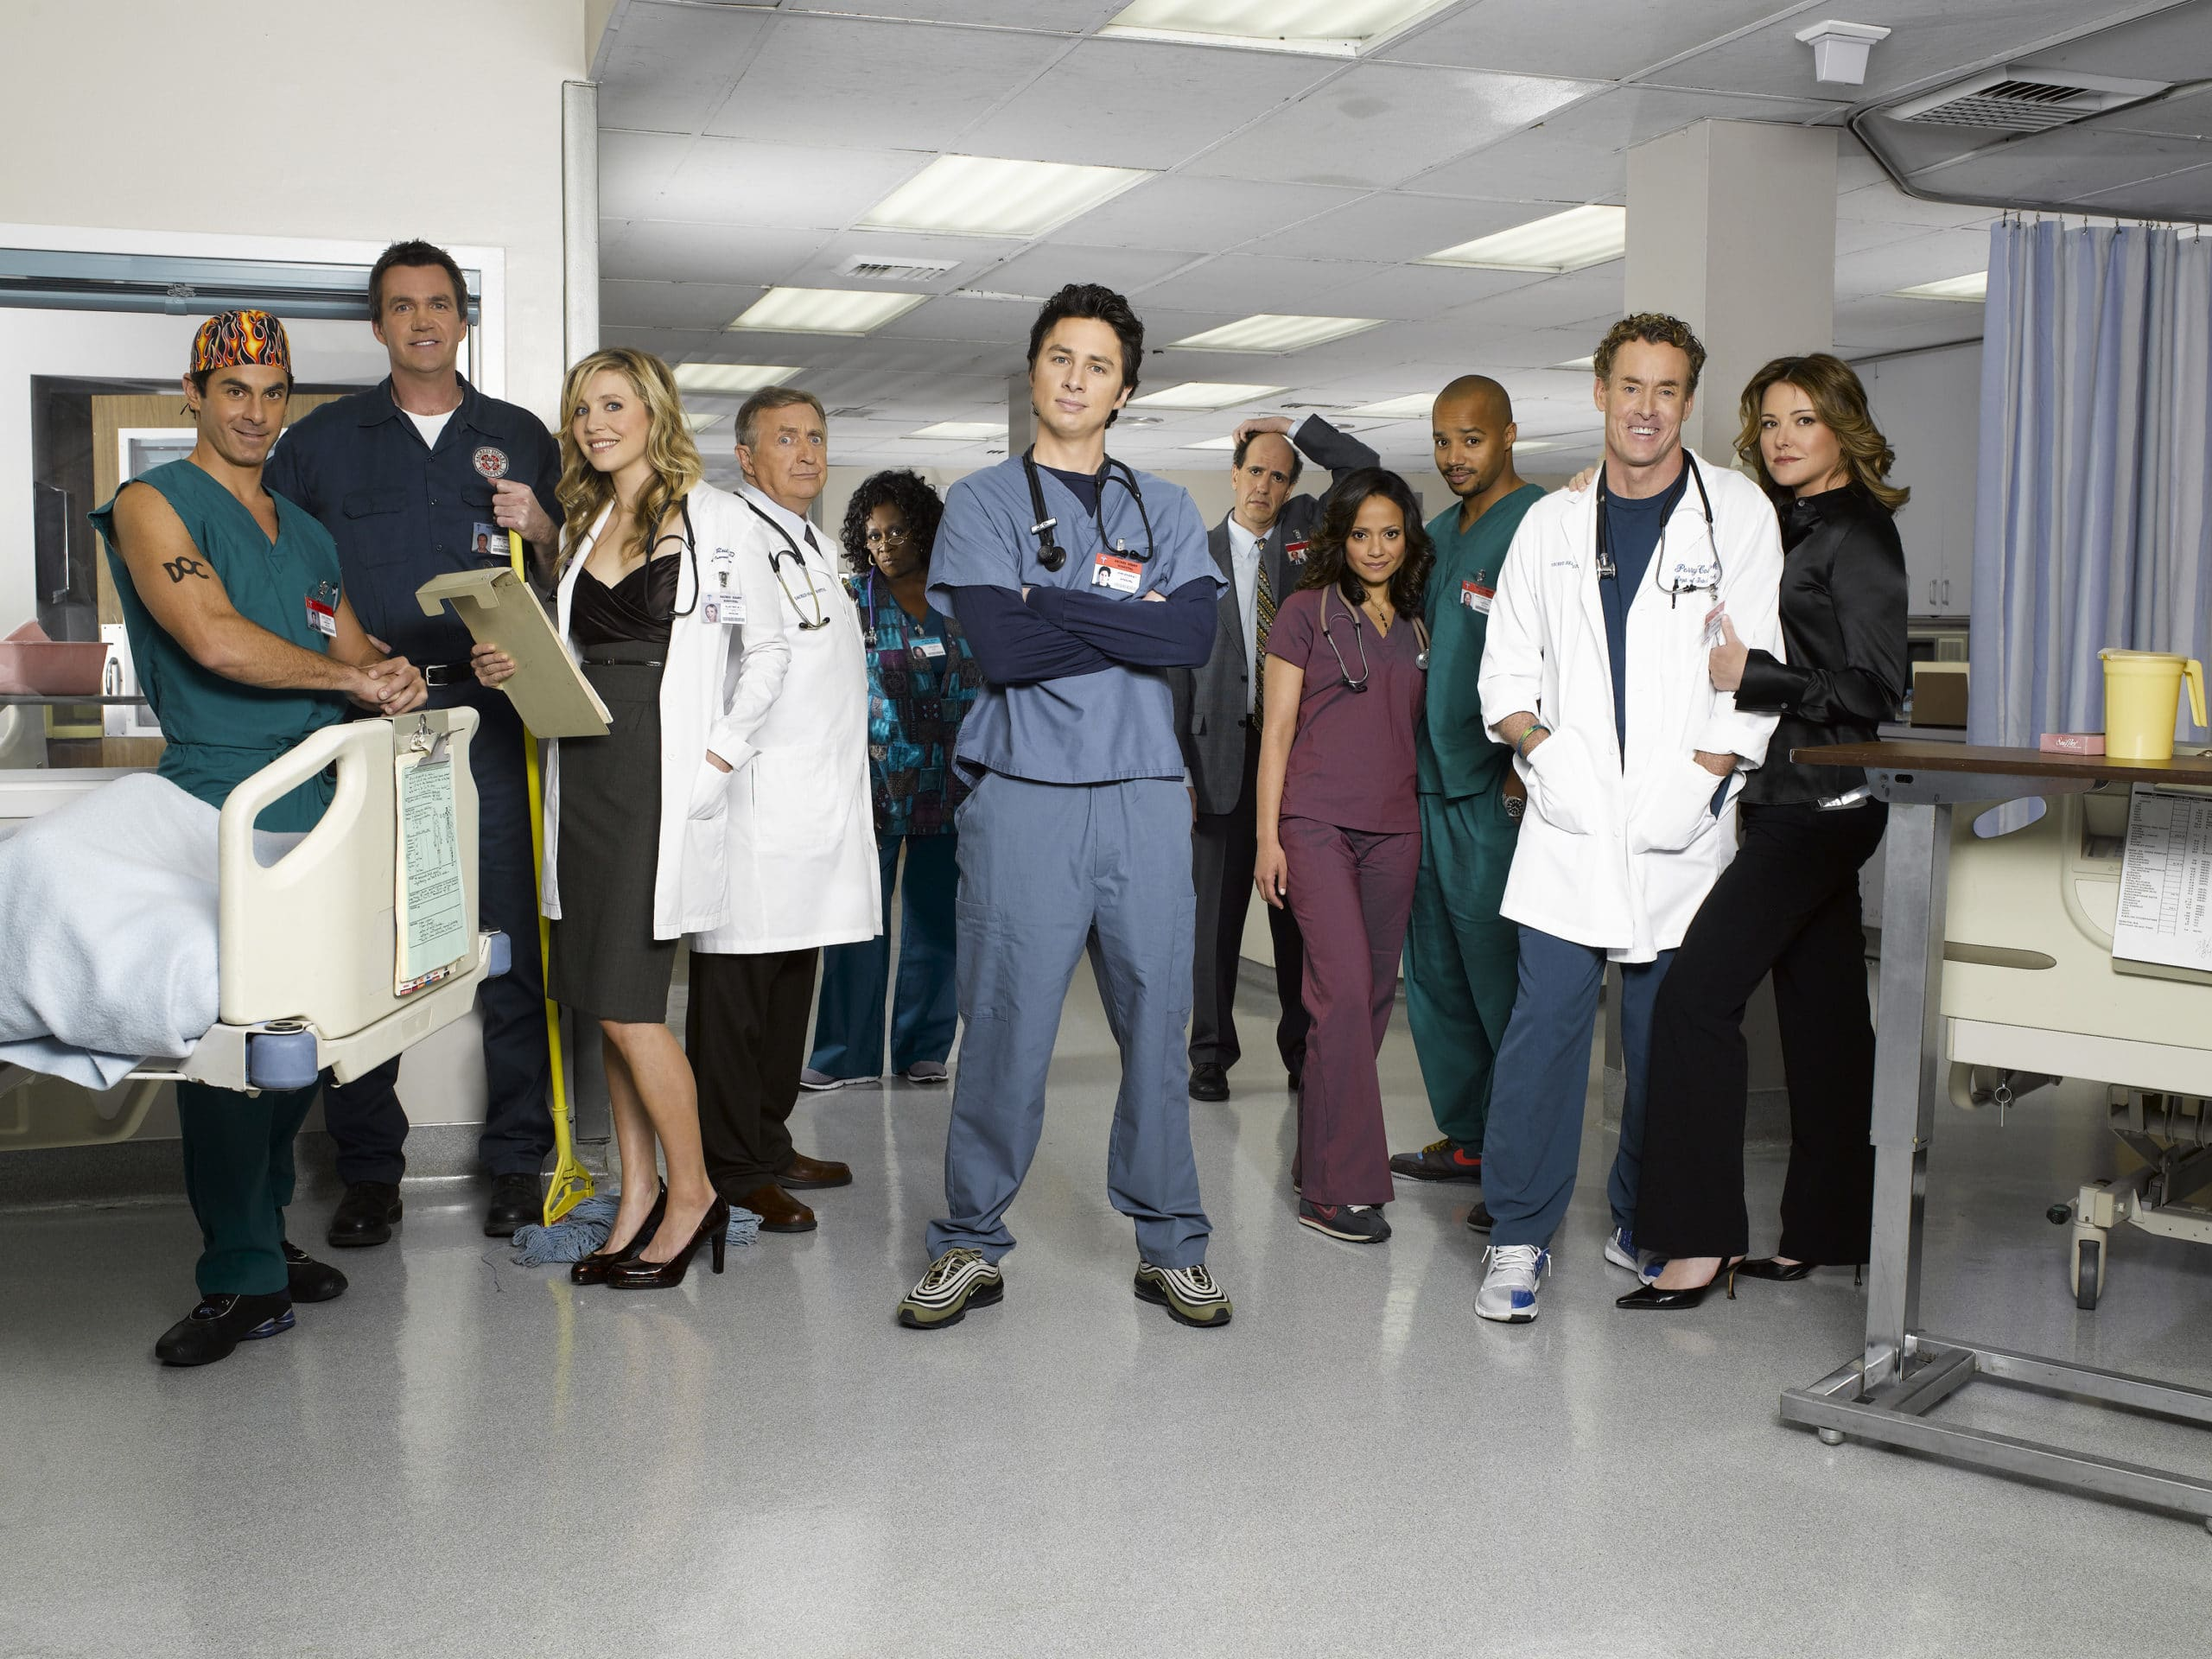 Scrubs Cast ©Touchstone Television. All Rights Reserved